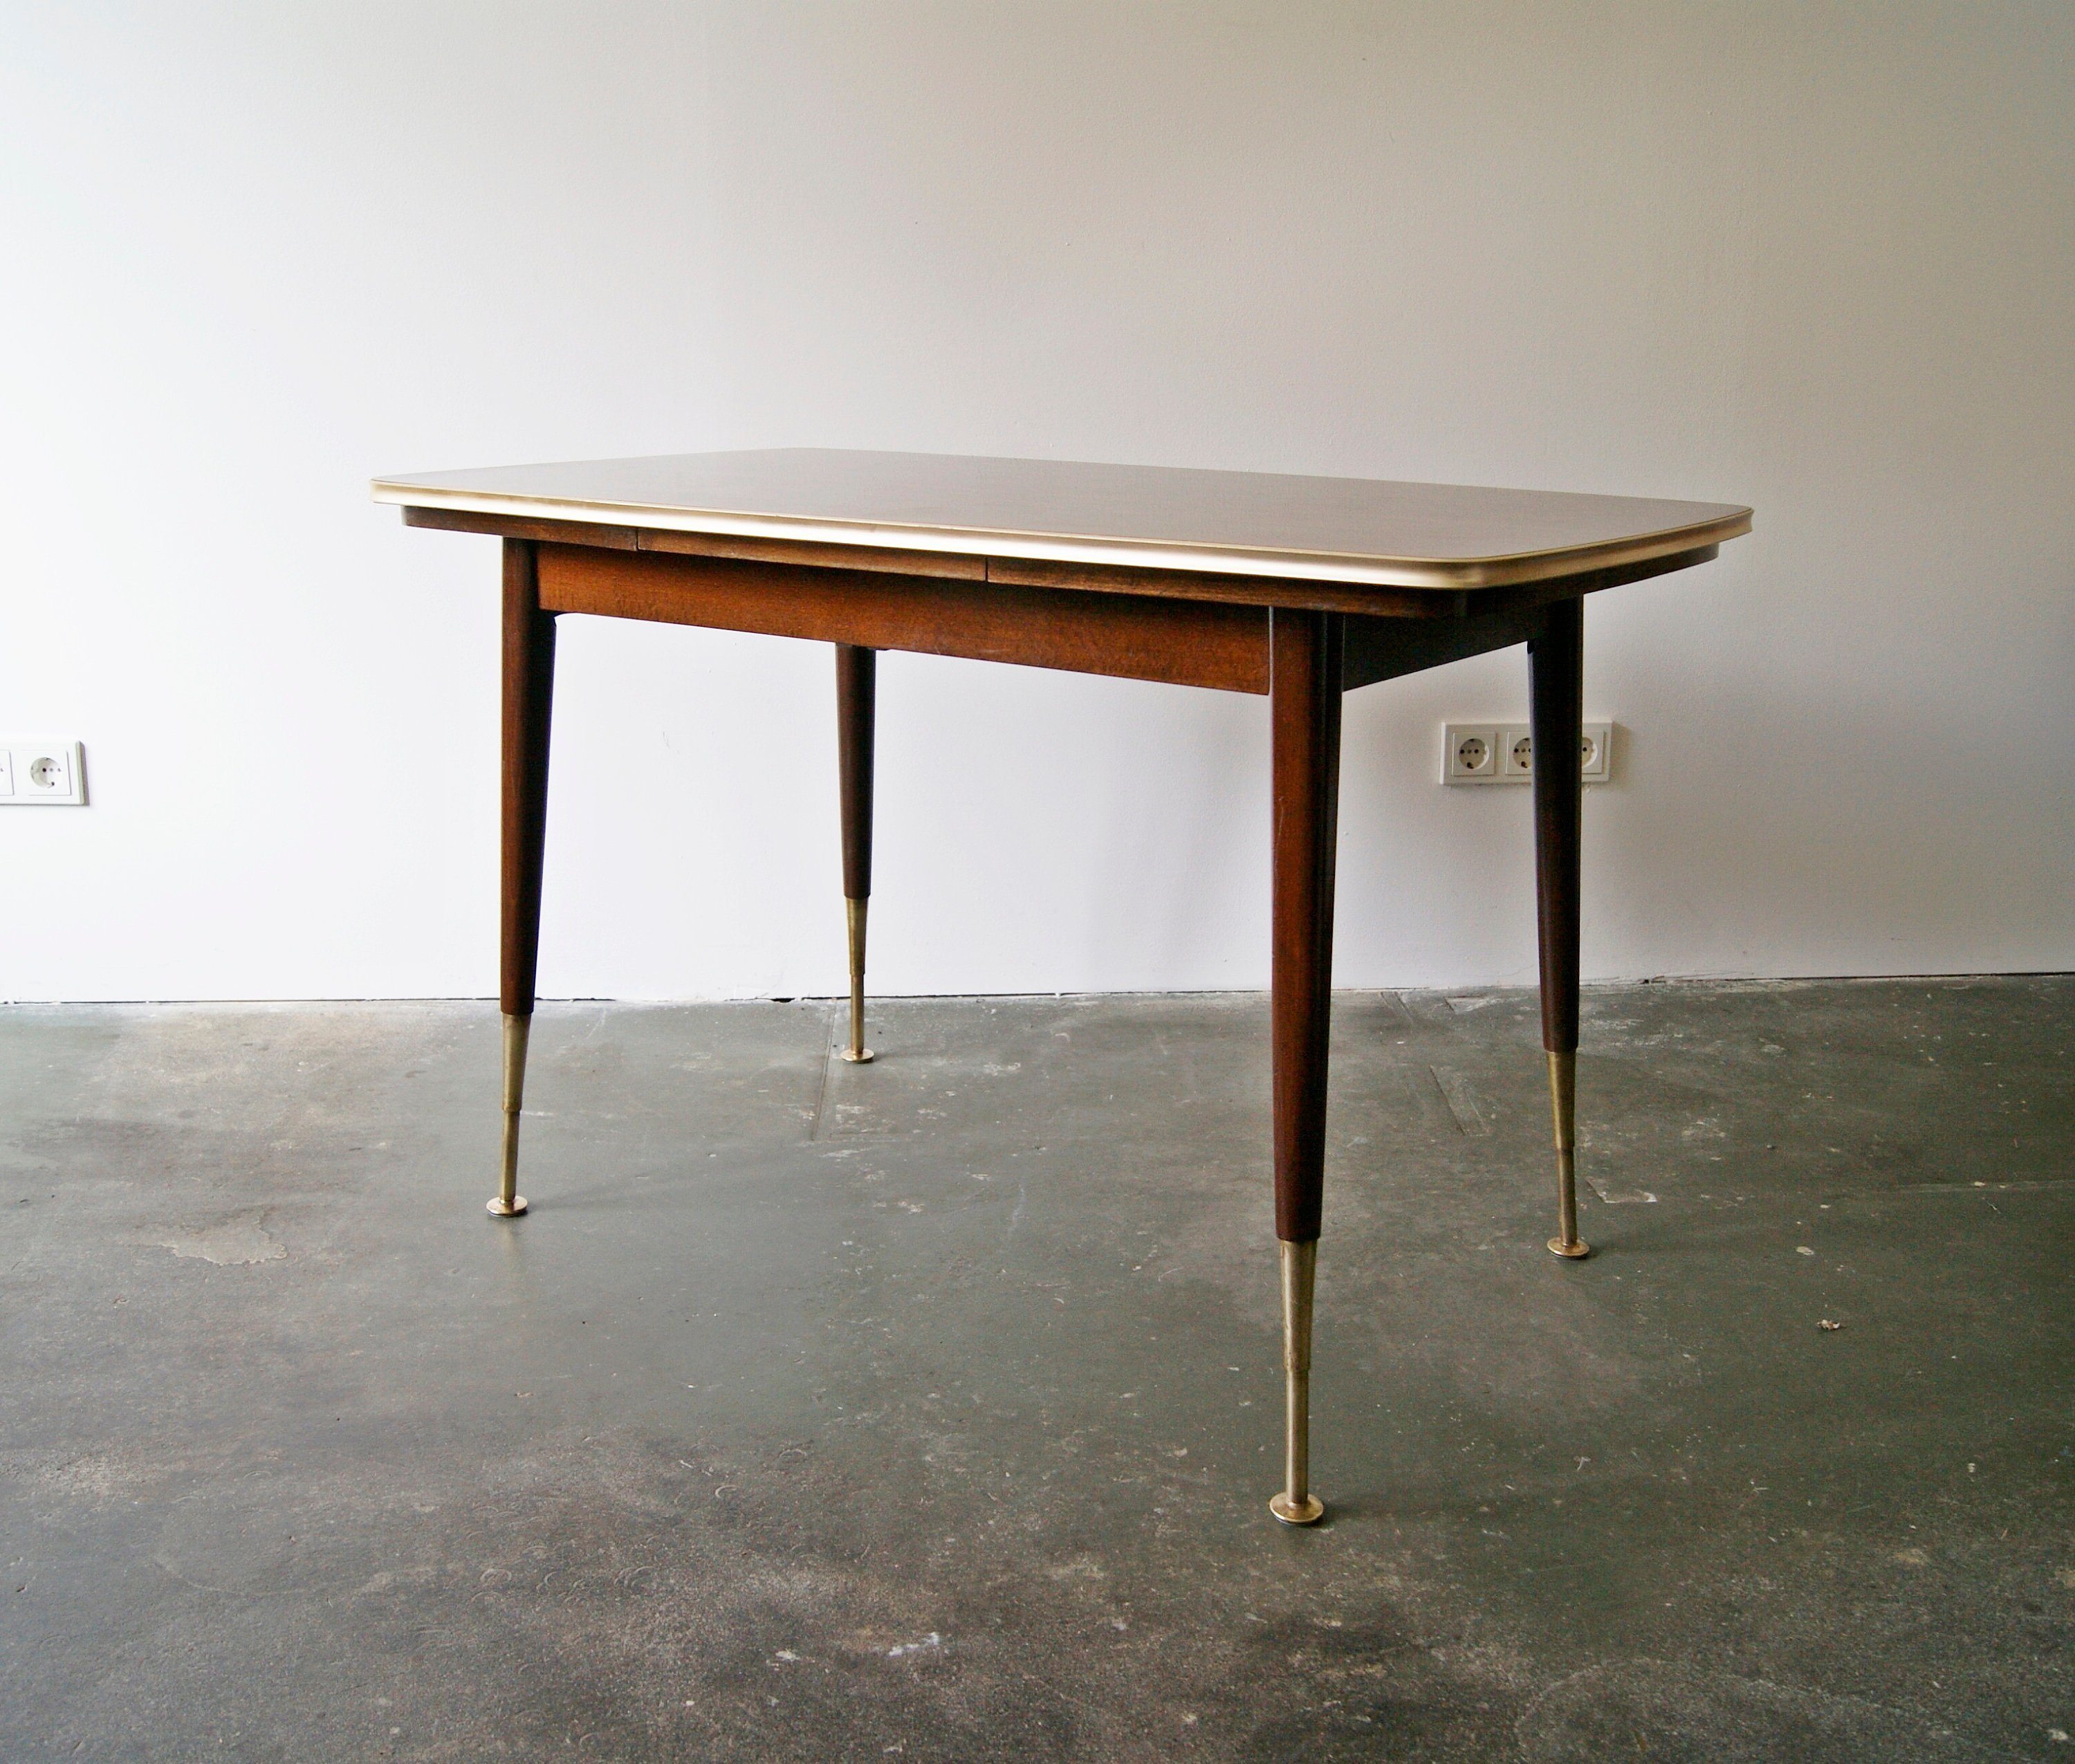 Coffee Table Extendable Top.Mid Century Coffee Table Height Adjustable And Extendable Coffee Table Dining Table 60s Table